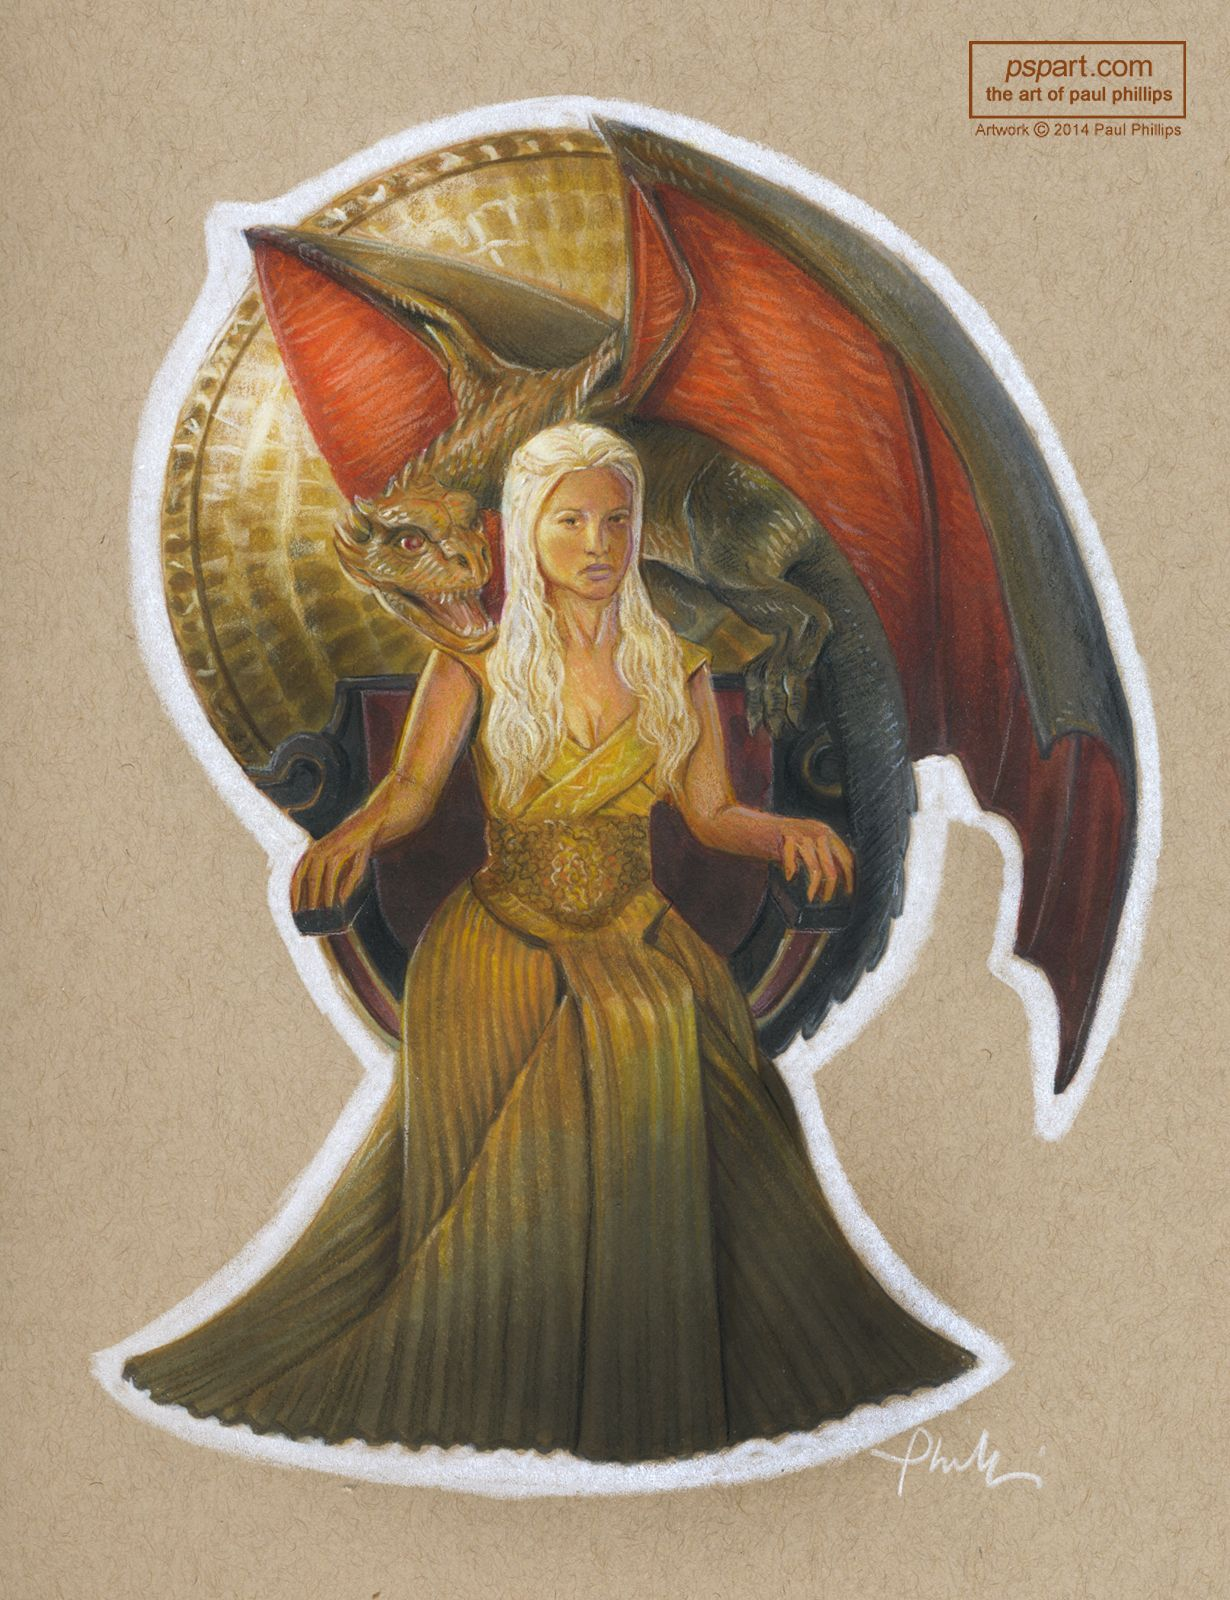 Dragons game of thrones colors - Markers And Colored Pencils On Toned And Tan Paper Likenesses Referenced From A Game Of Thrones Tr